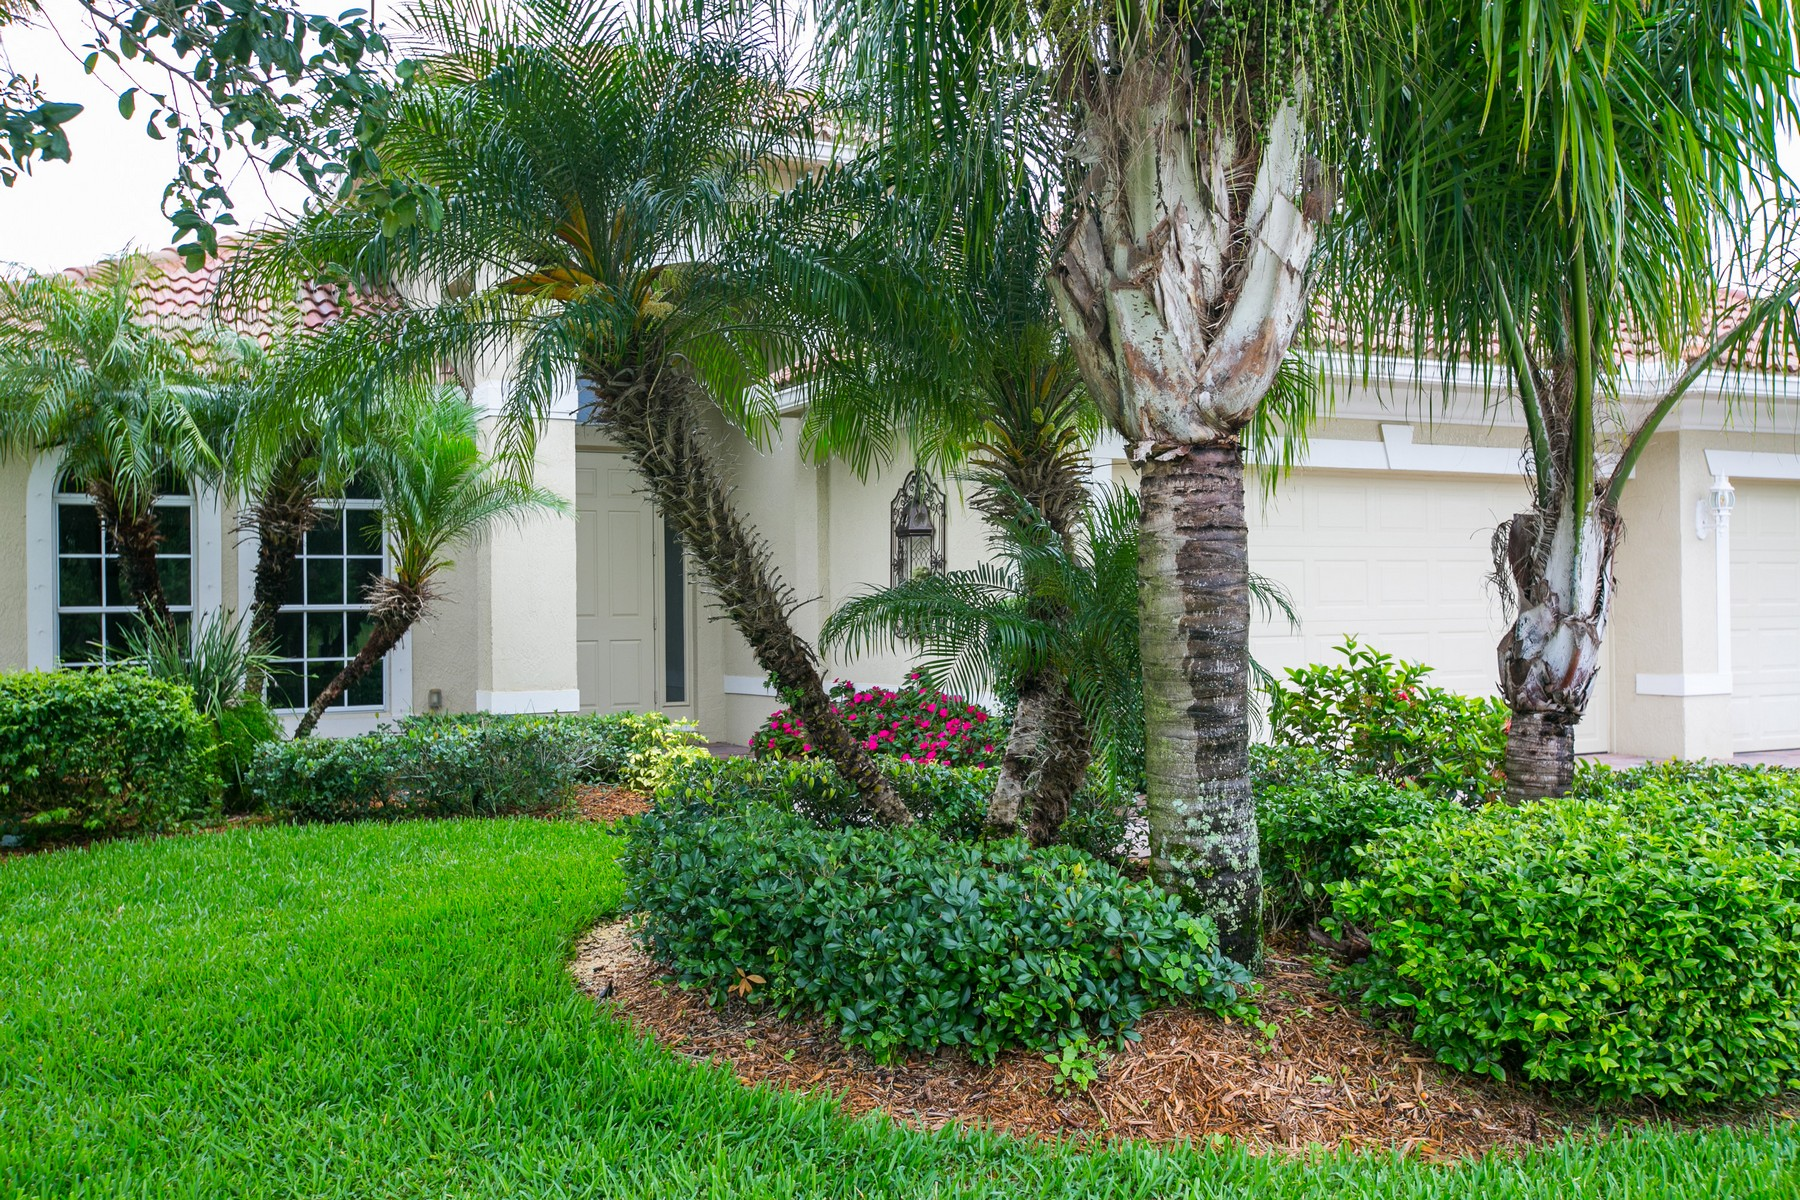 Single Family Home for Sale at Spacious Lakefront Home 460 Pittman Avenue Vero Beach, Florida, 32968 United States